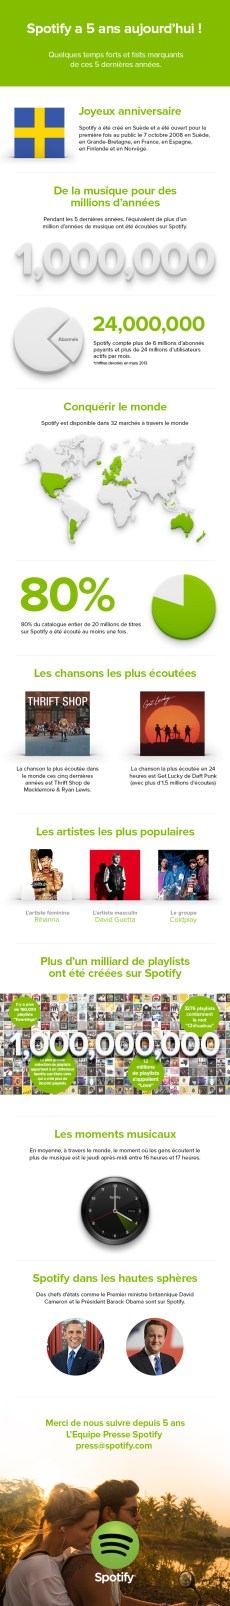 Infographie-presse-5-ans-Spotify